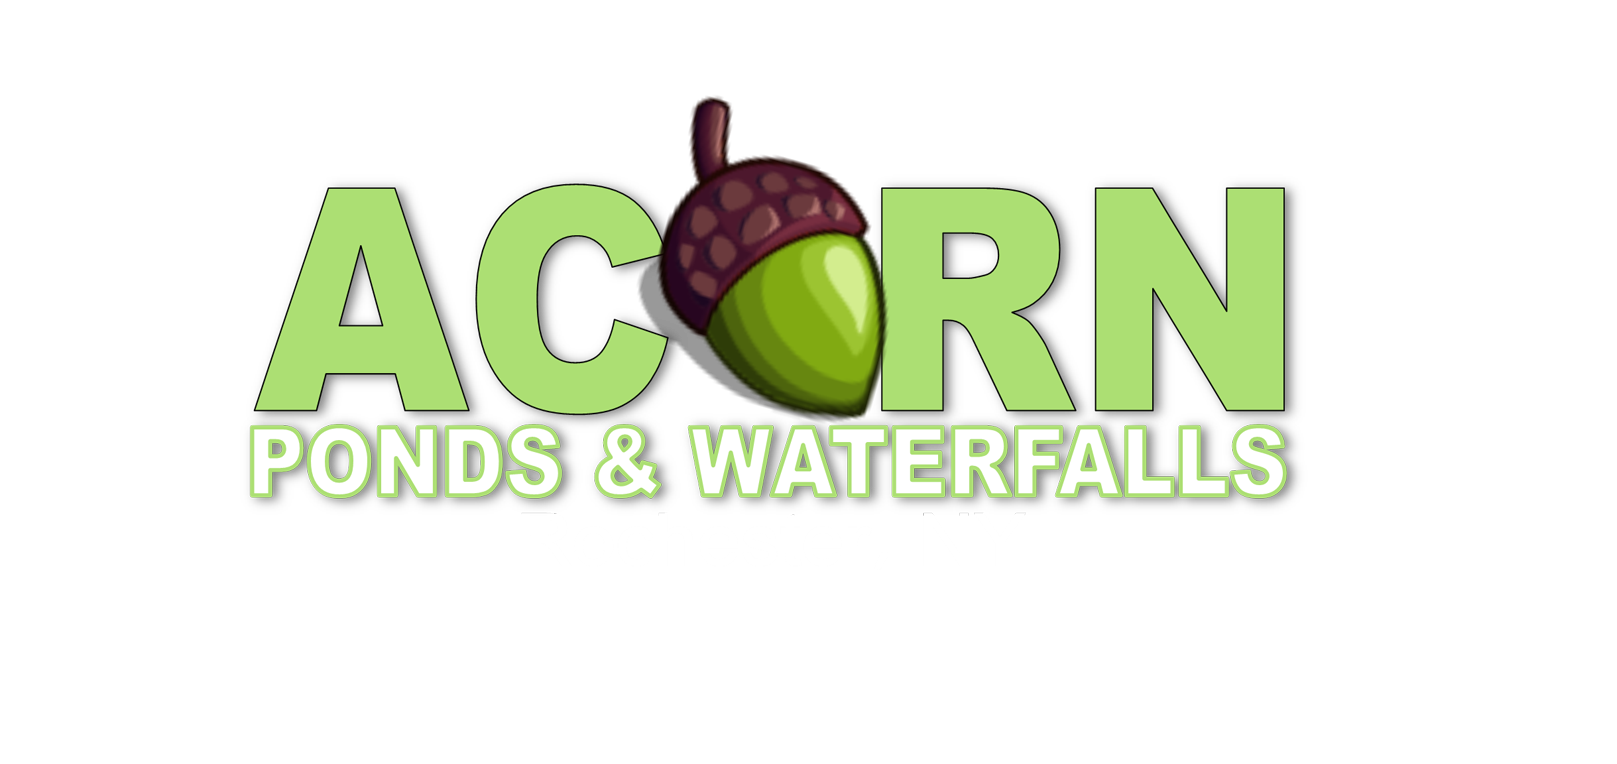 Acorn's Pond-Water Feature Service In Rochester Monroe County New York (NY) Near Me